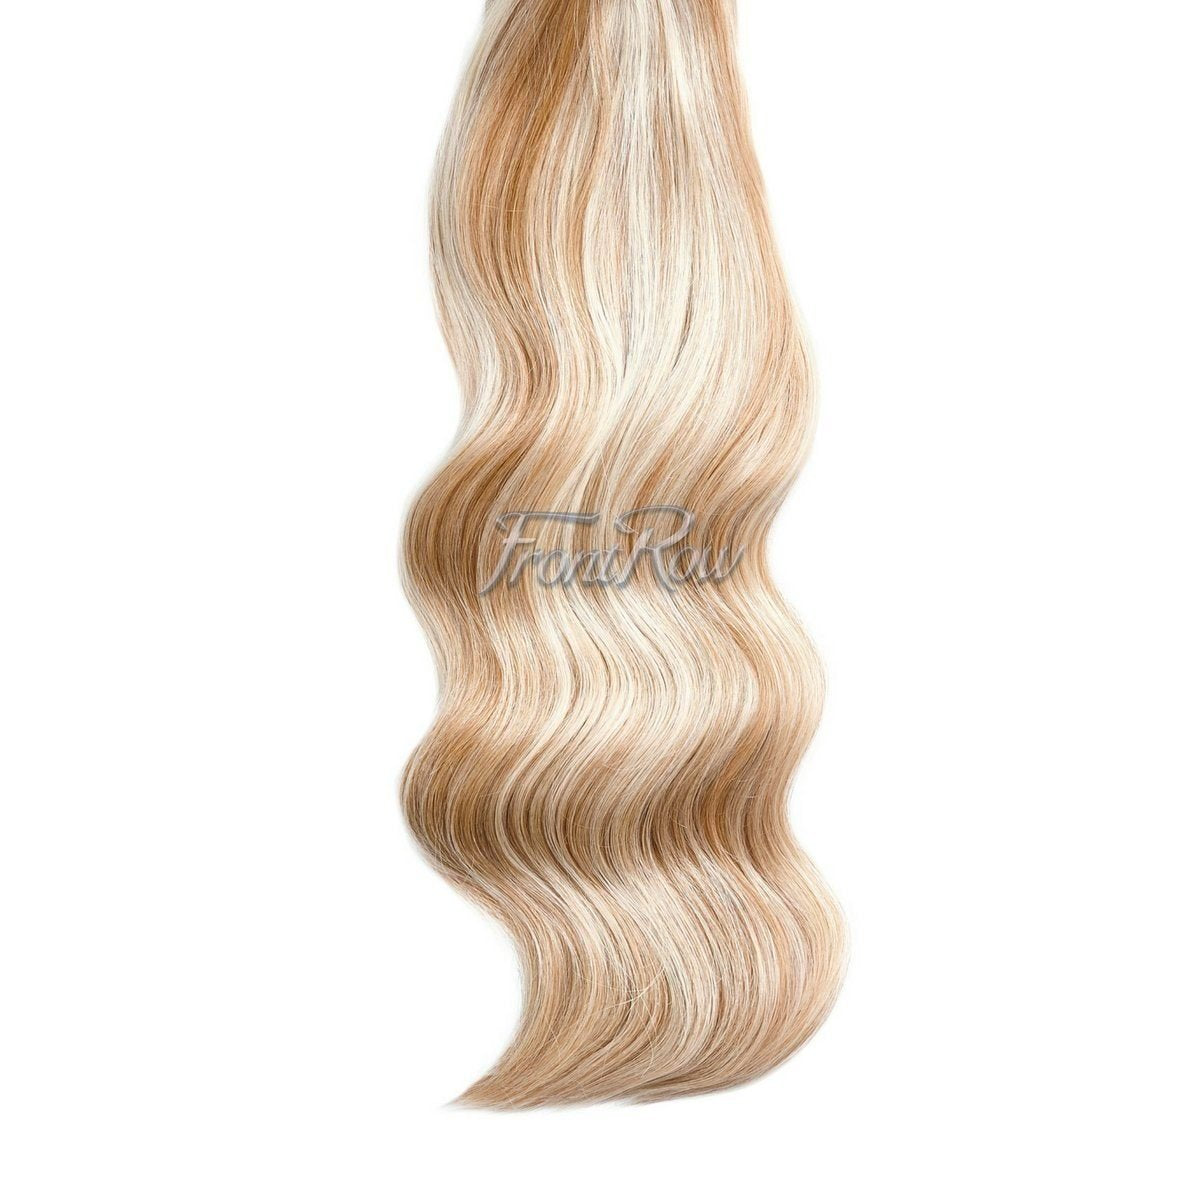 Ready To Mingle 20inch Highlighted Blonde Clip-in Hair Extensions